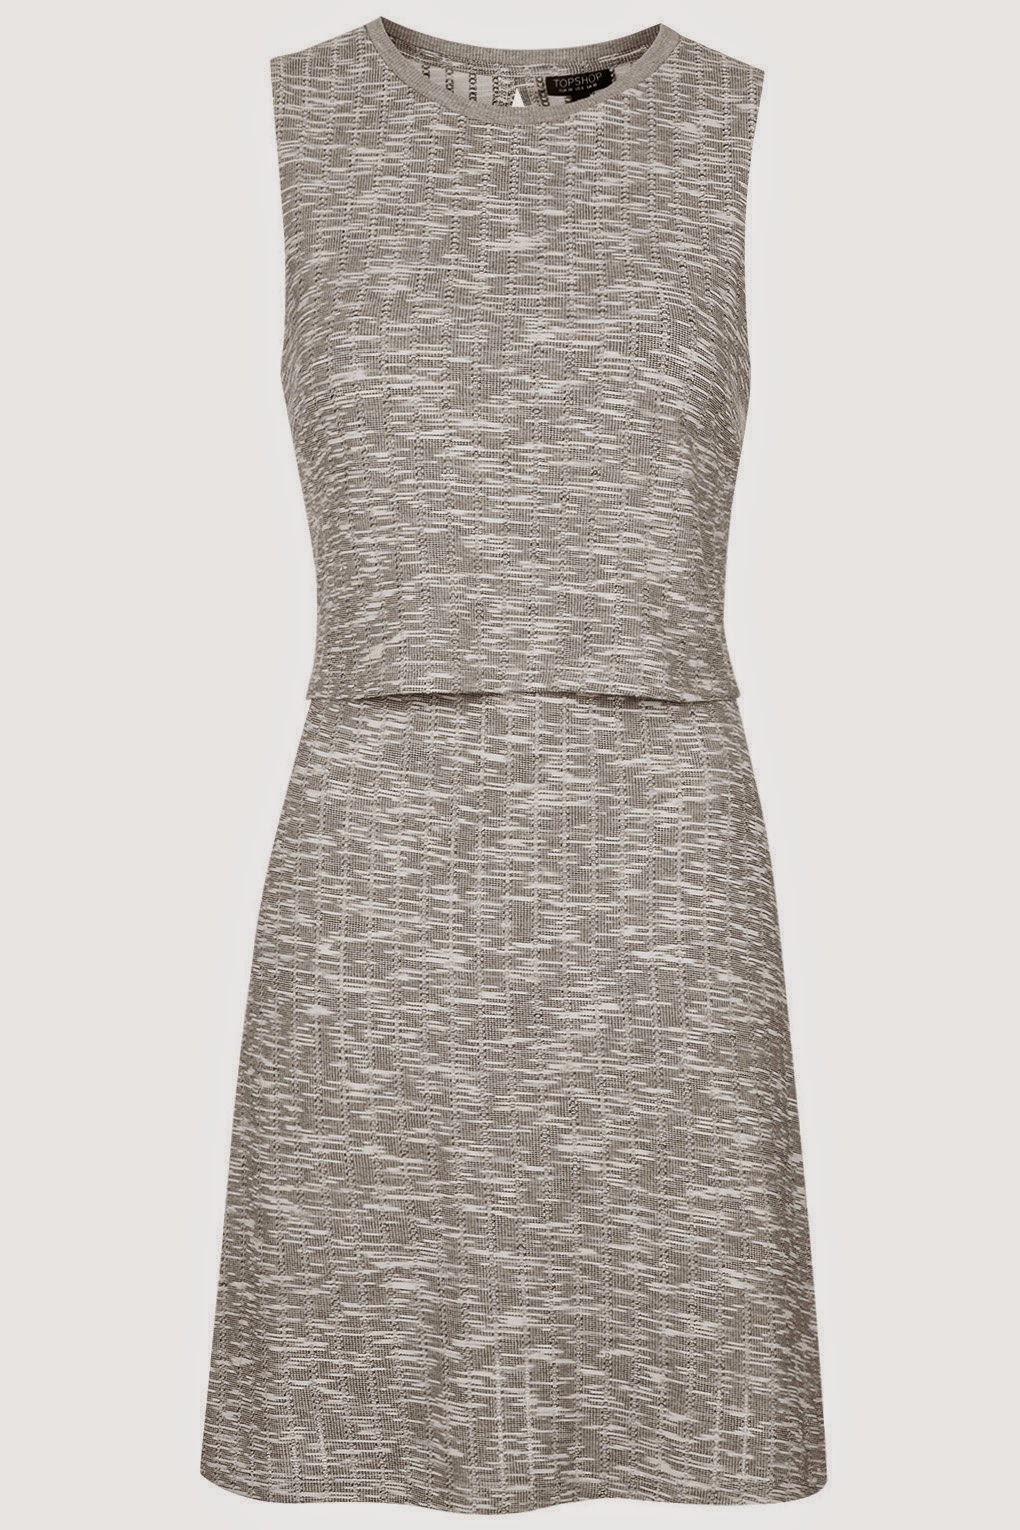 grey topshop dress,